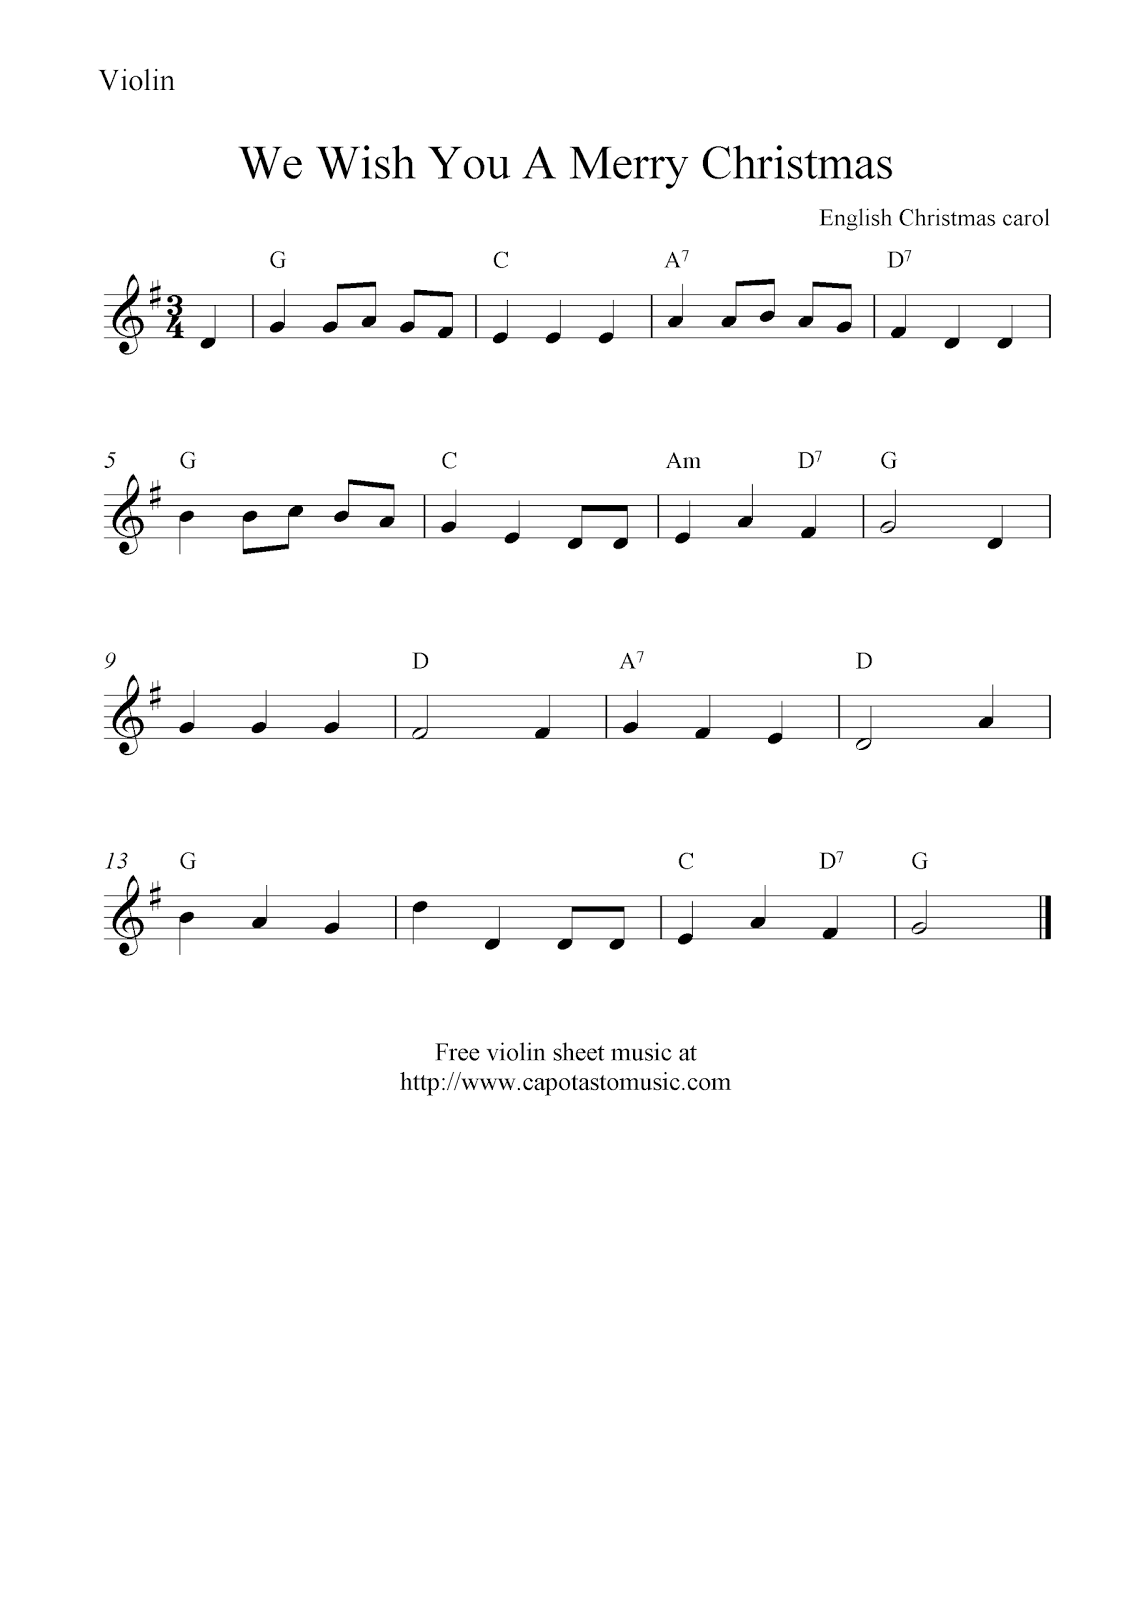 Free Sheet Music Scores: We Wish You A Merry Christmas, free Christmas ...